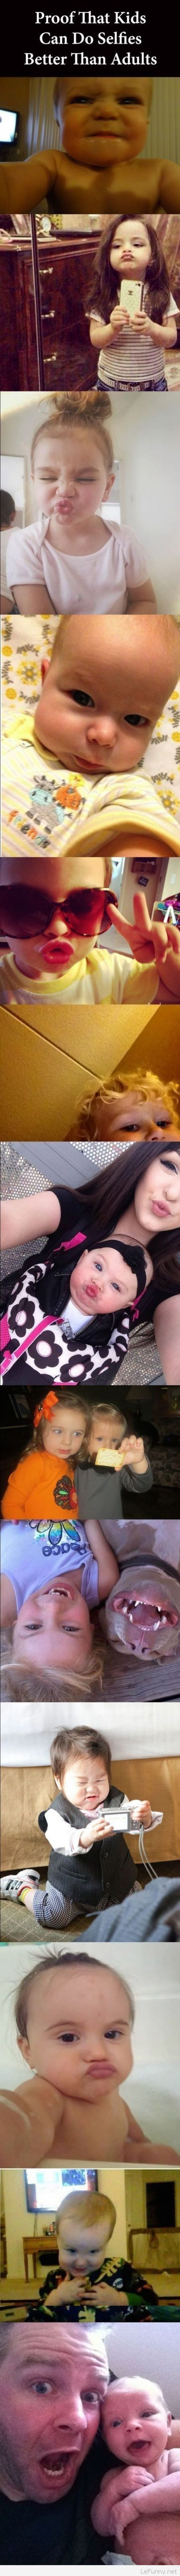 These 13 Selfies Of Kids Will Melt Your Heart